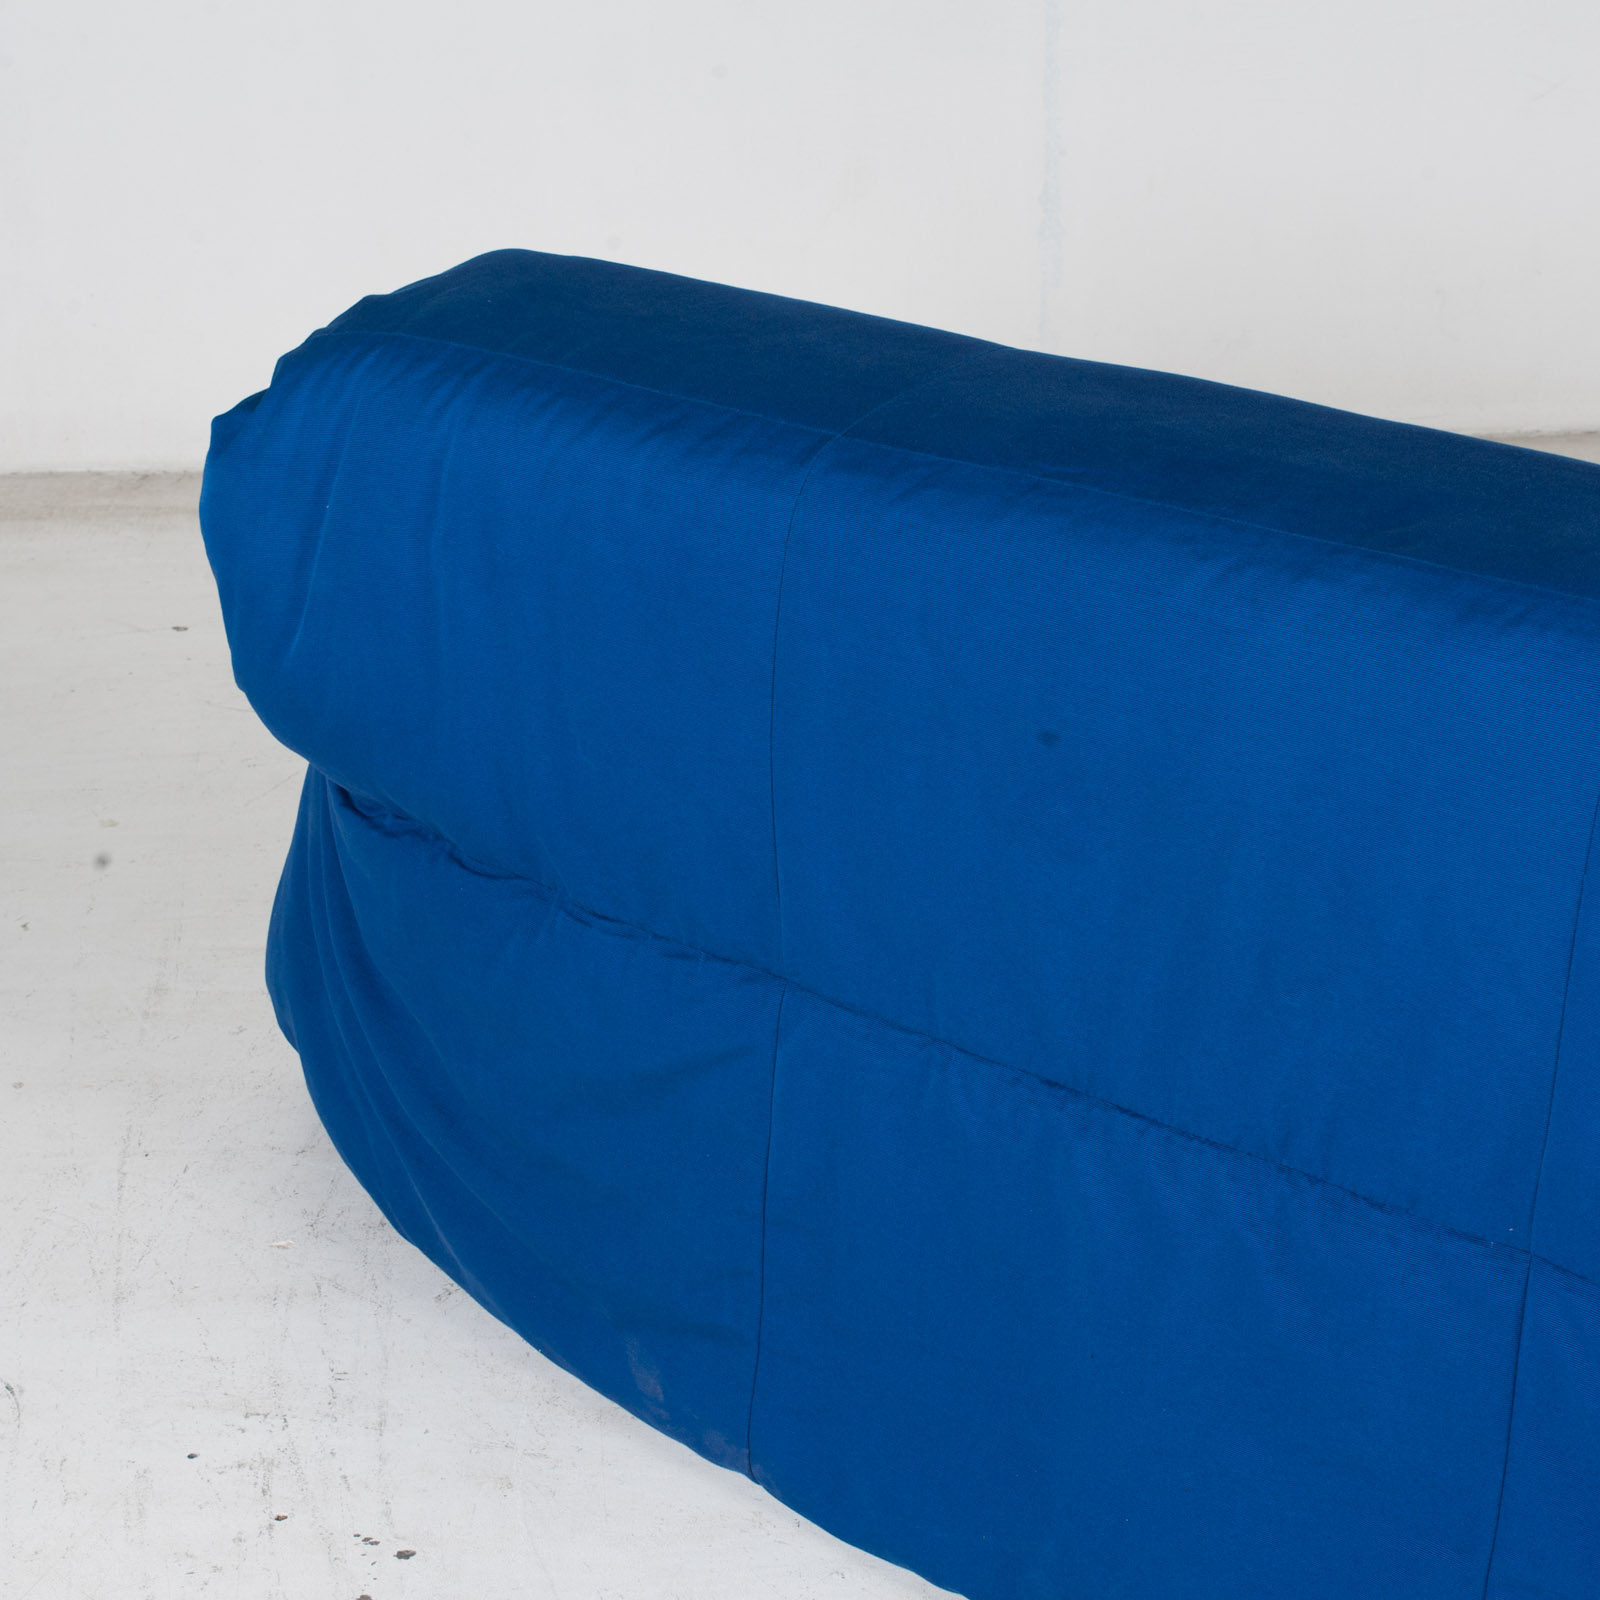 Sofa Bed By Ligne Roset In Blue Upholstery, 1960s, France9